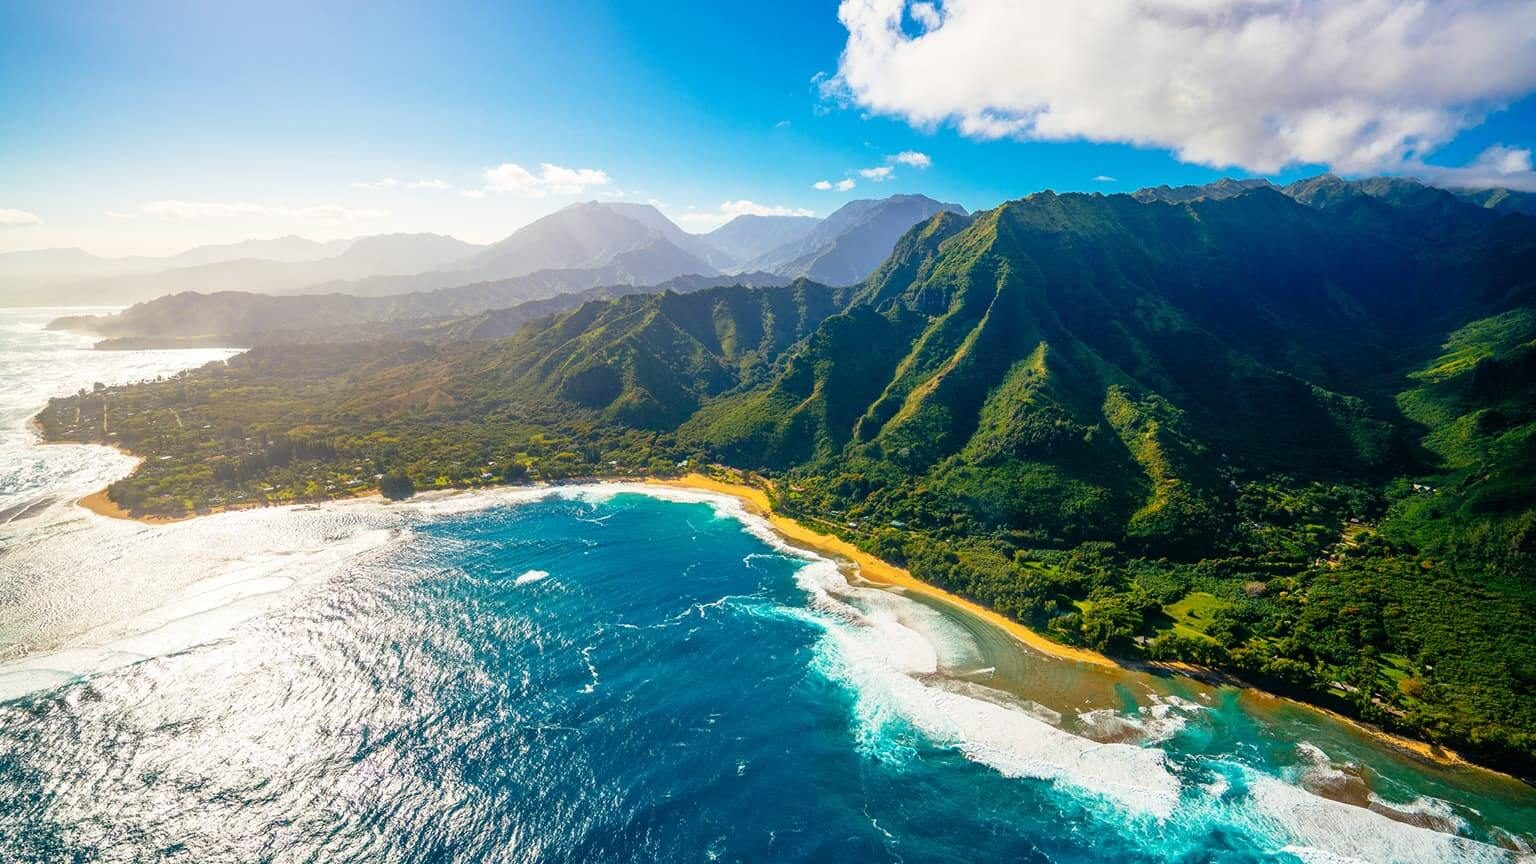 Mountain and sea view in Hawaii